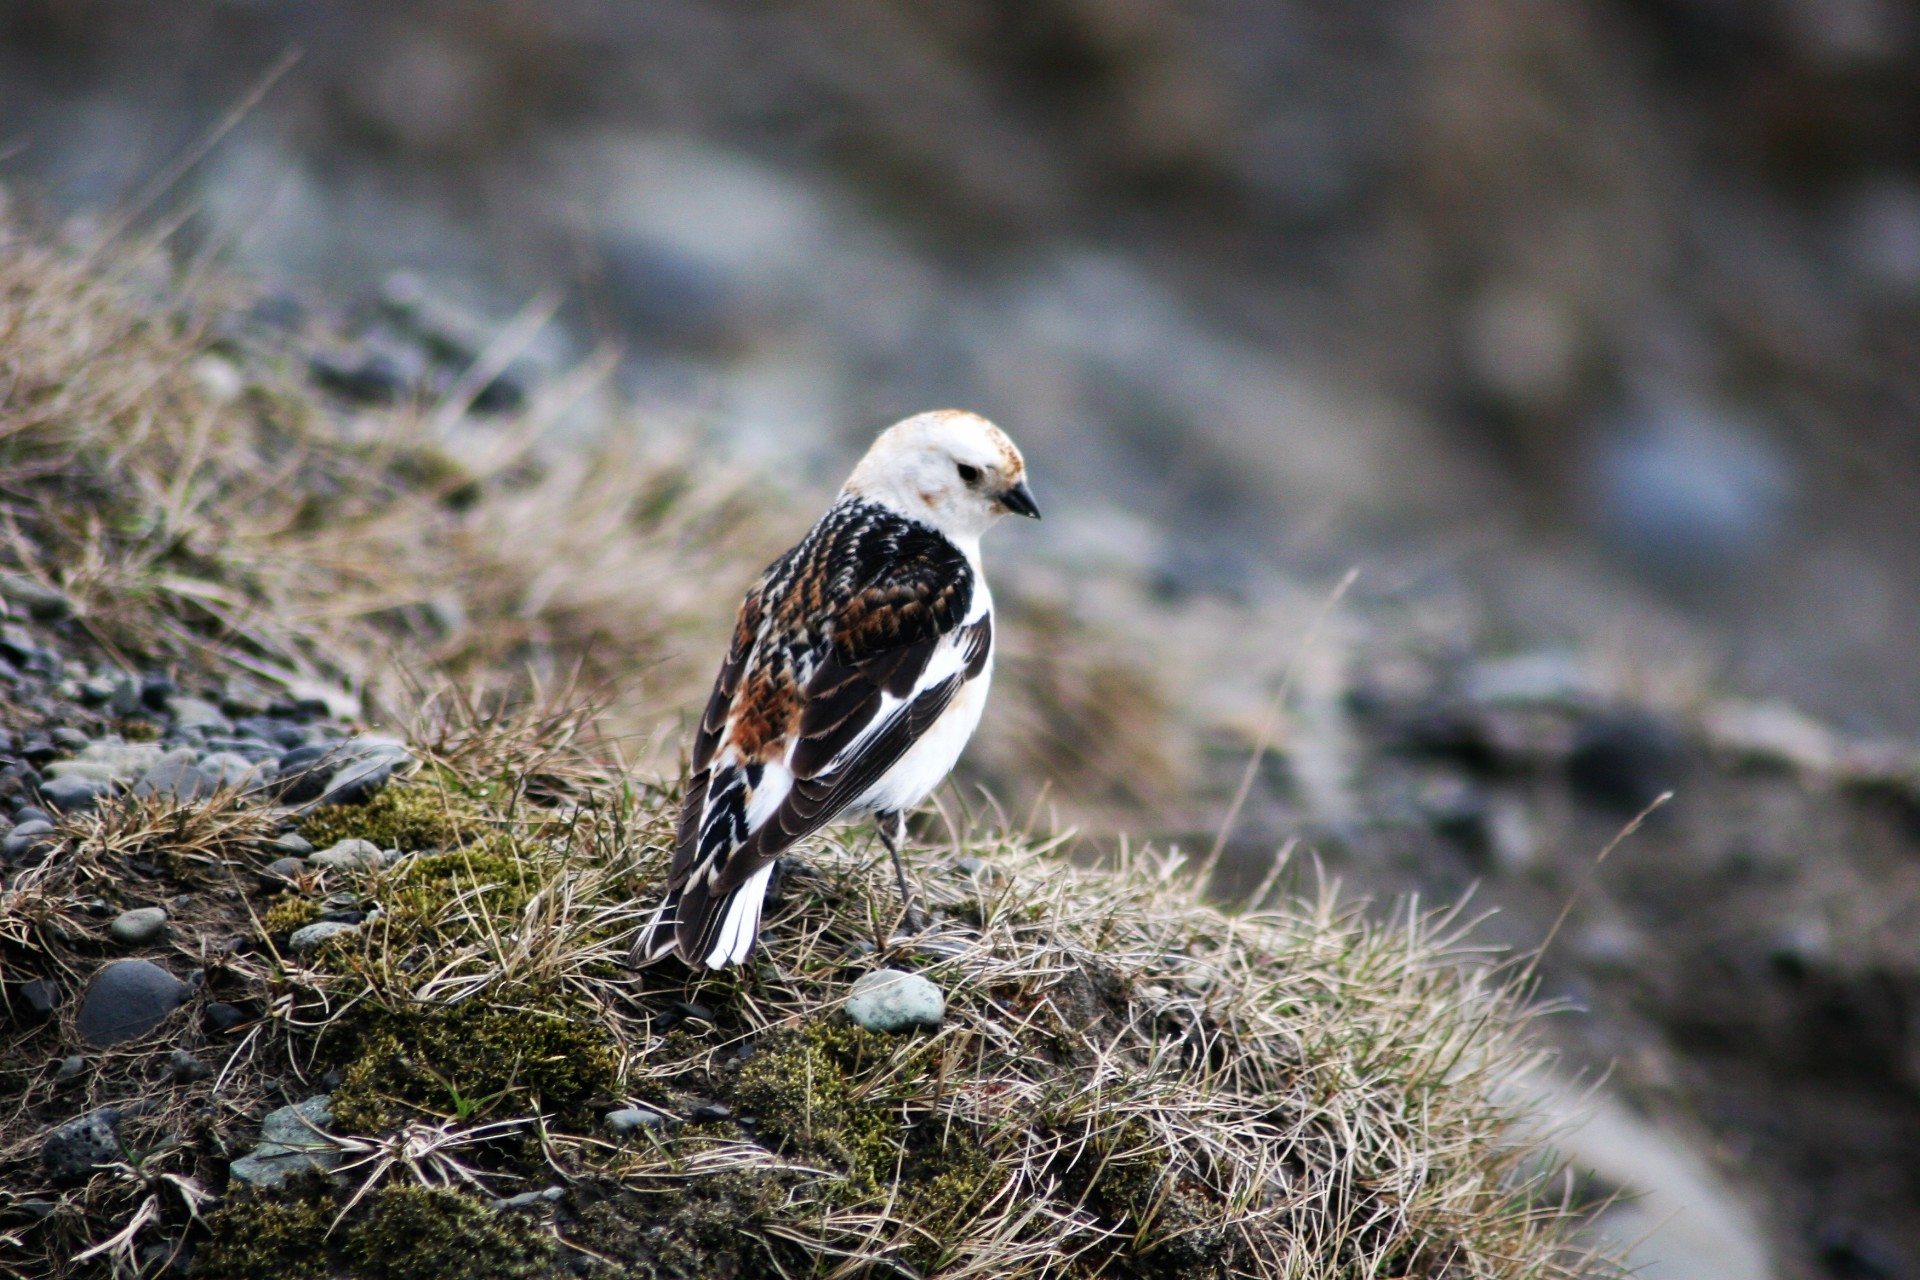 The Snow Bunting for #ShowTheLove